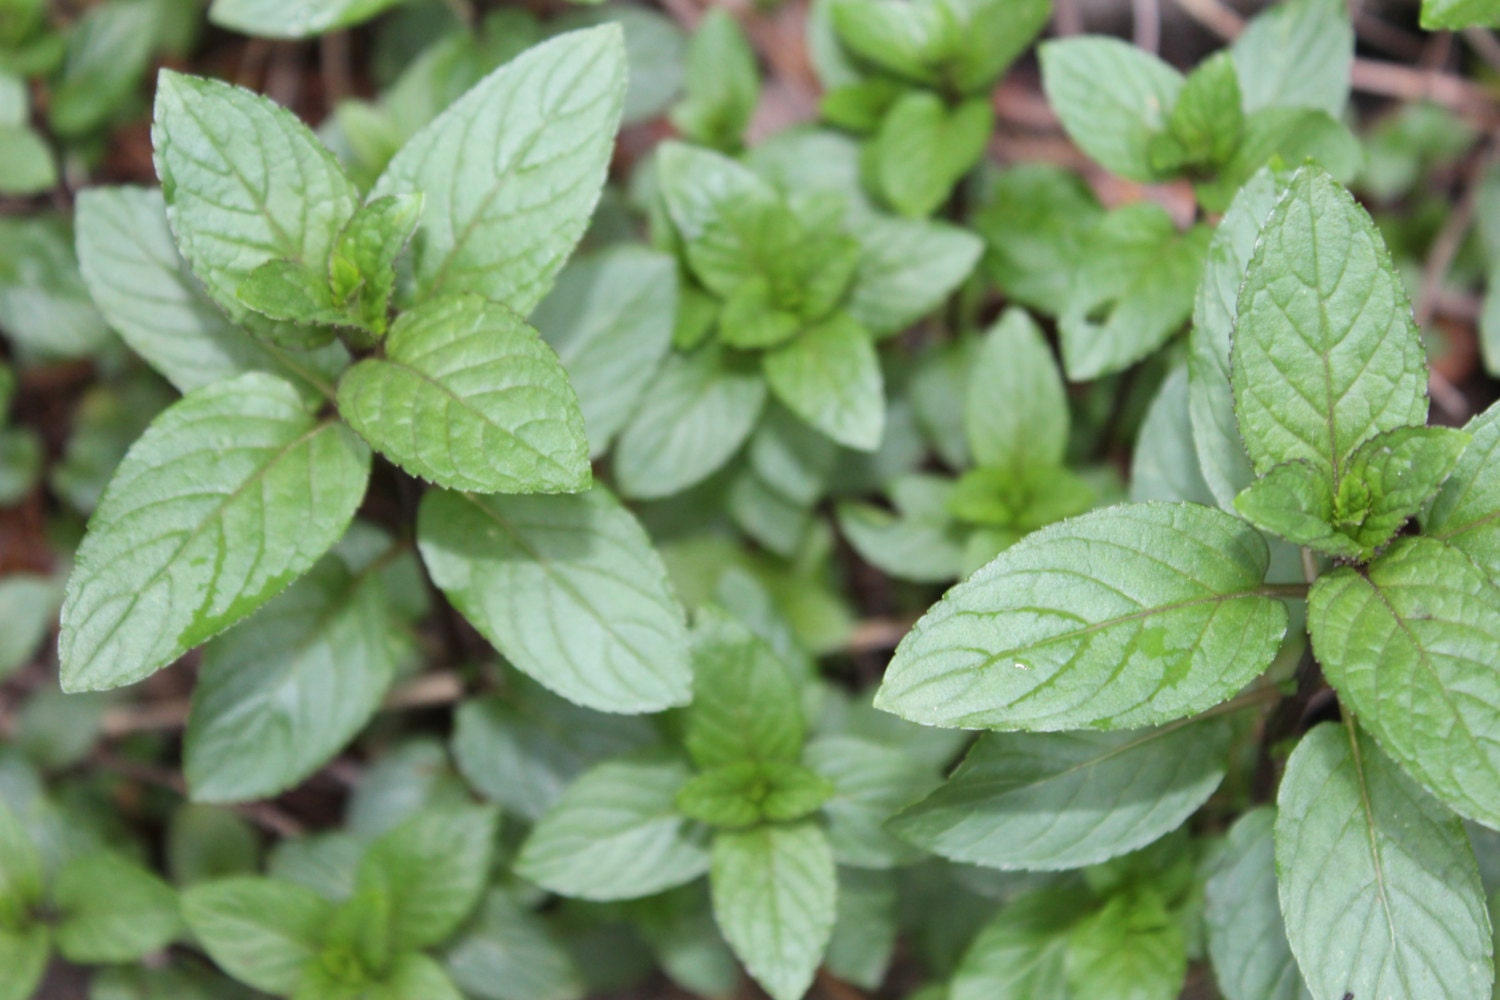 20 Chocolate Mint sprigs/ cuttings, Organic Fresh Herb from ...